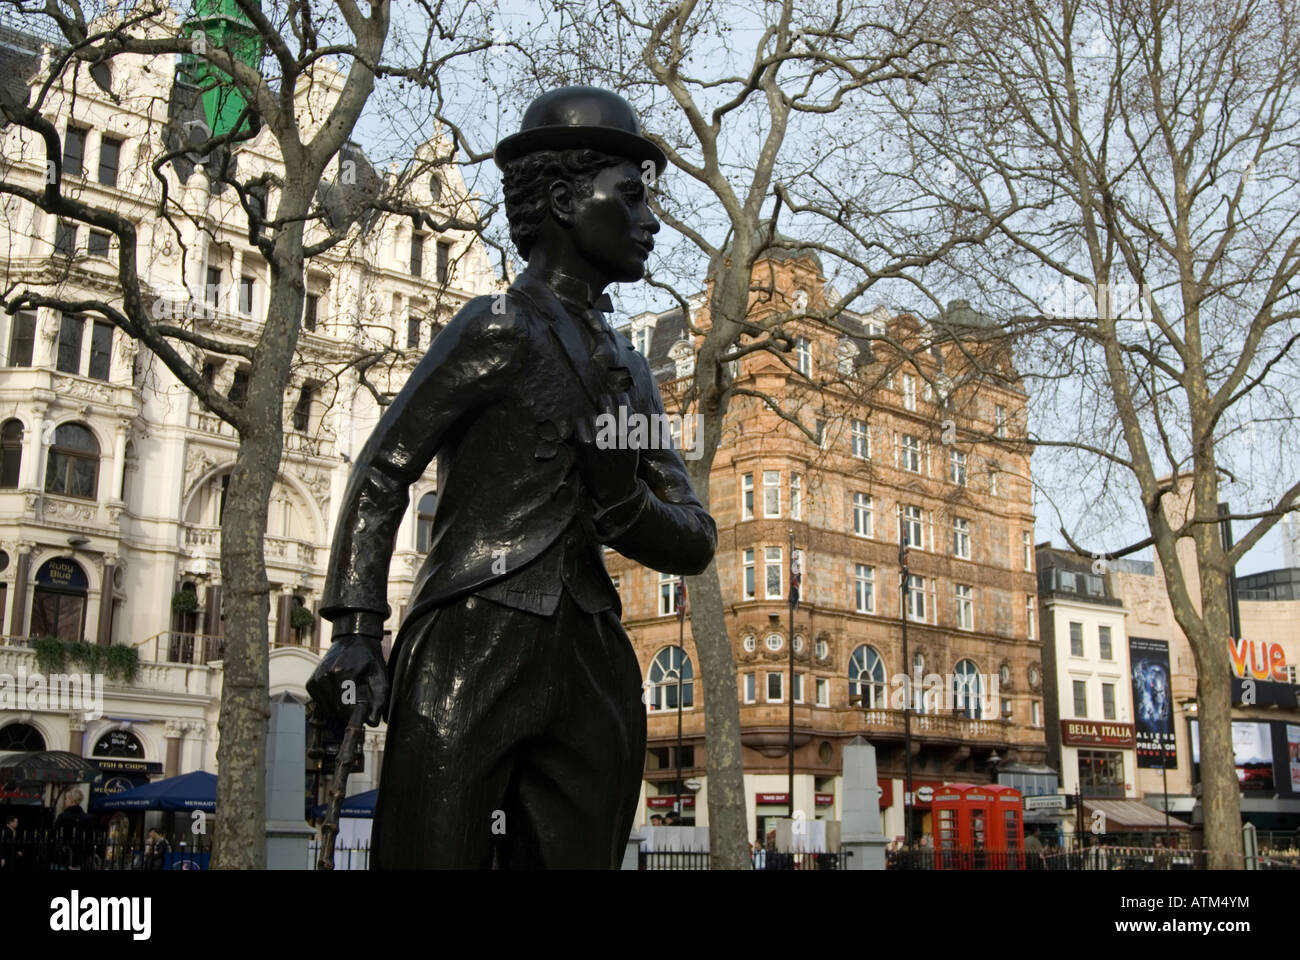 Charlie Chaplin statue in Leicester Square London England UK - Stock Image